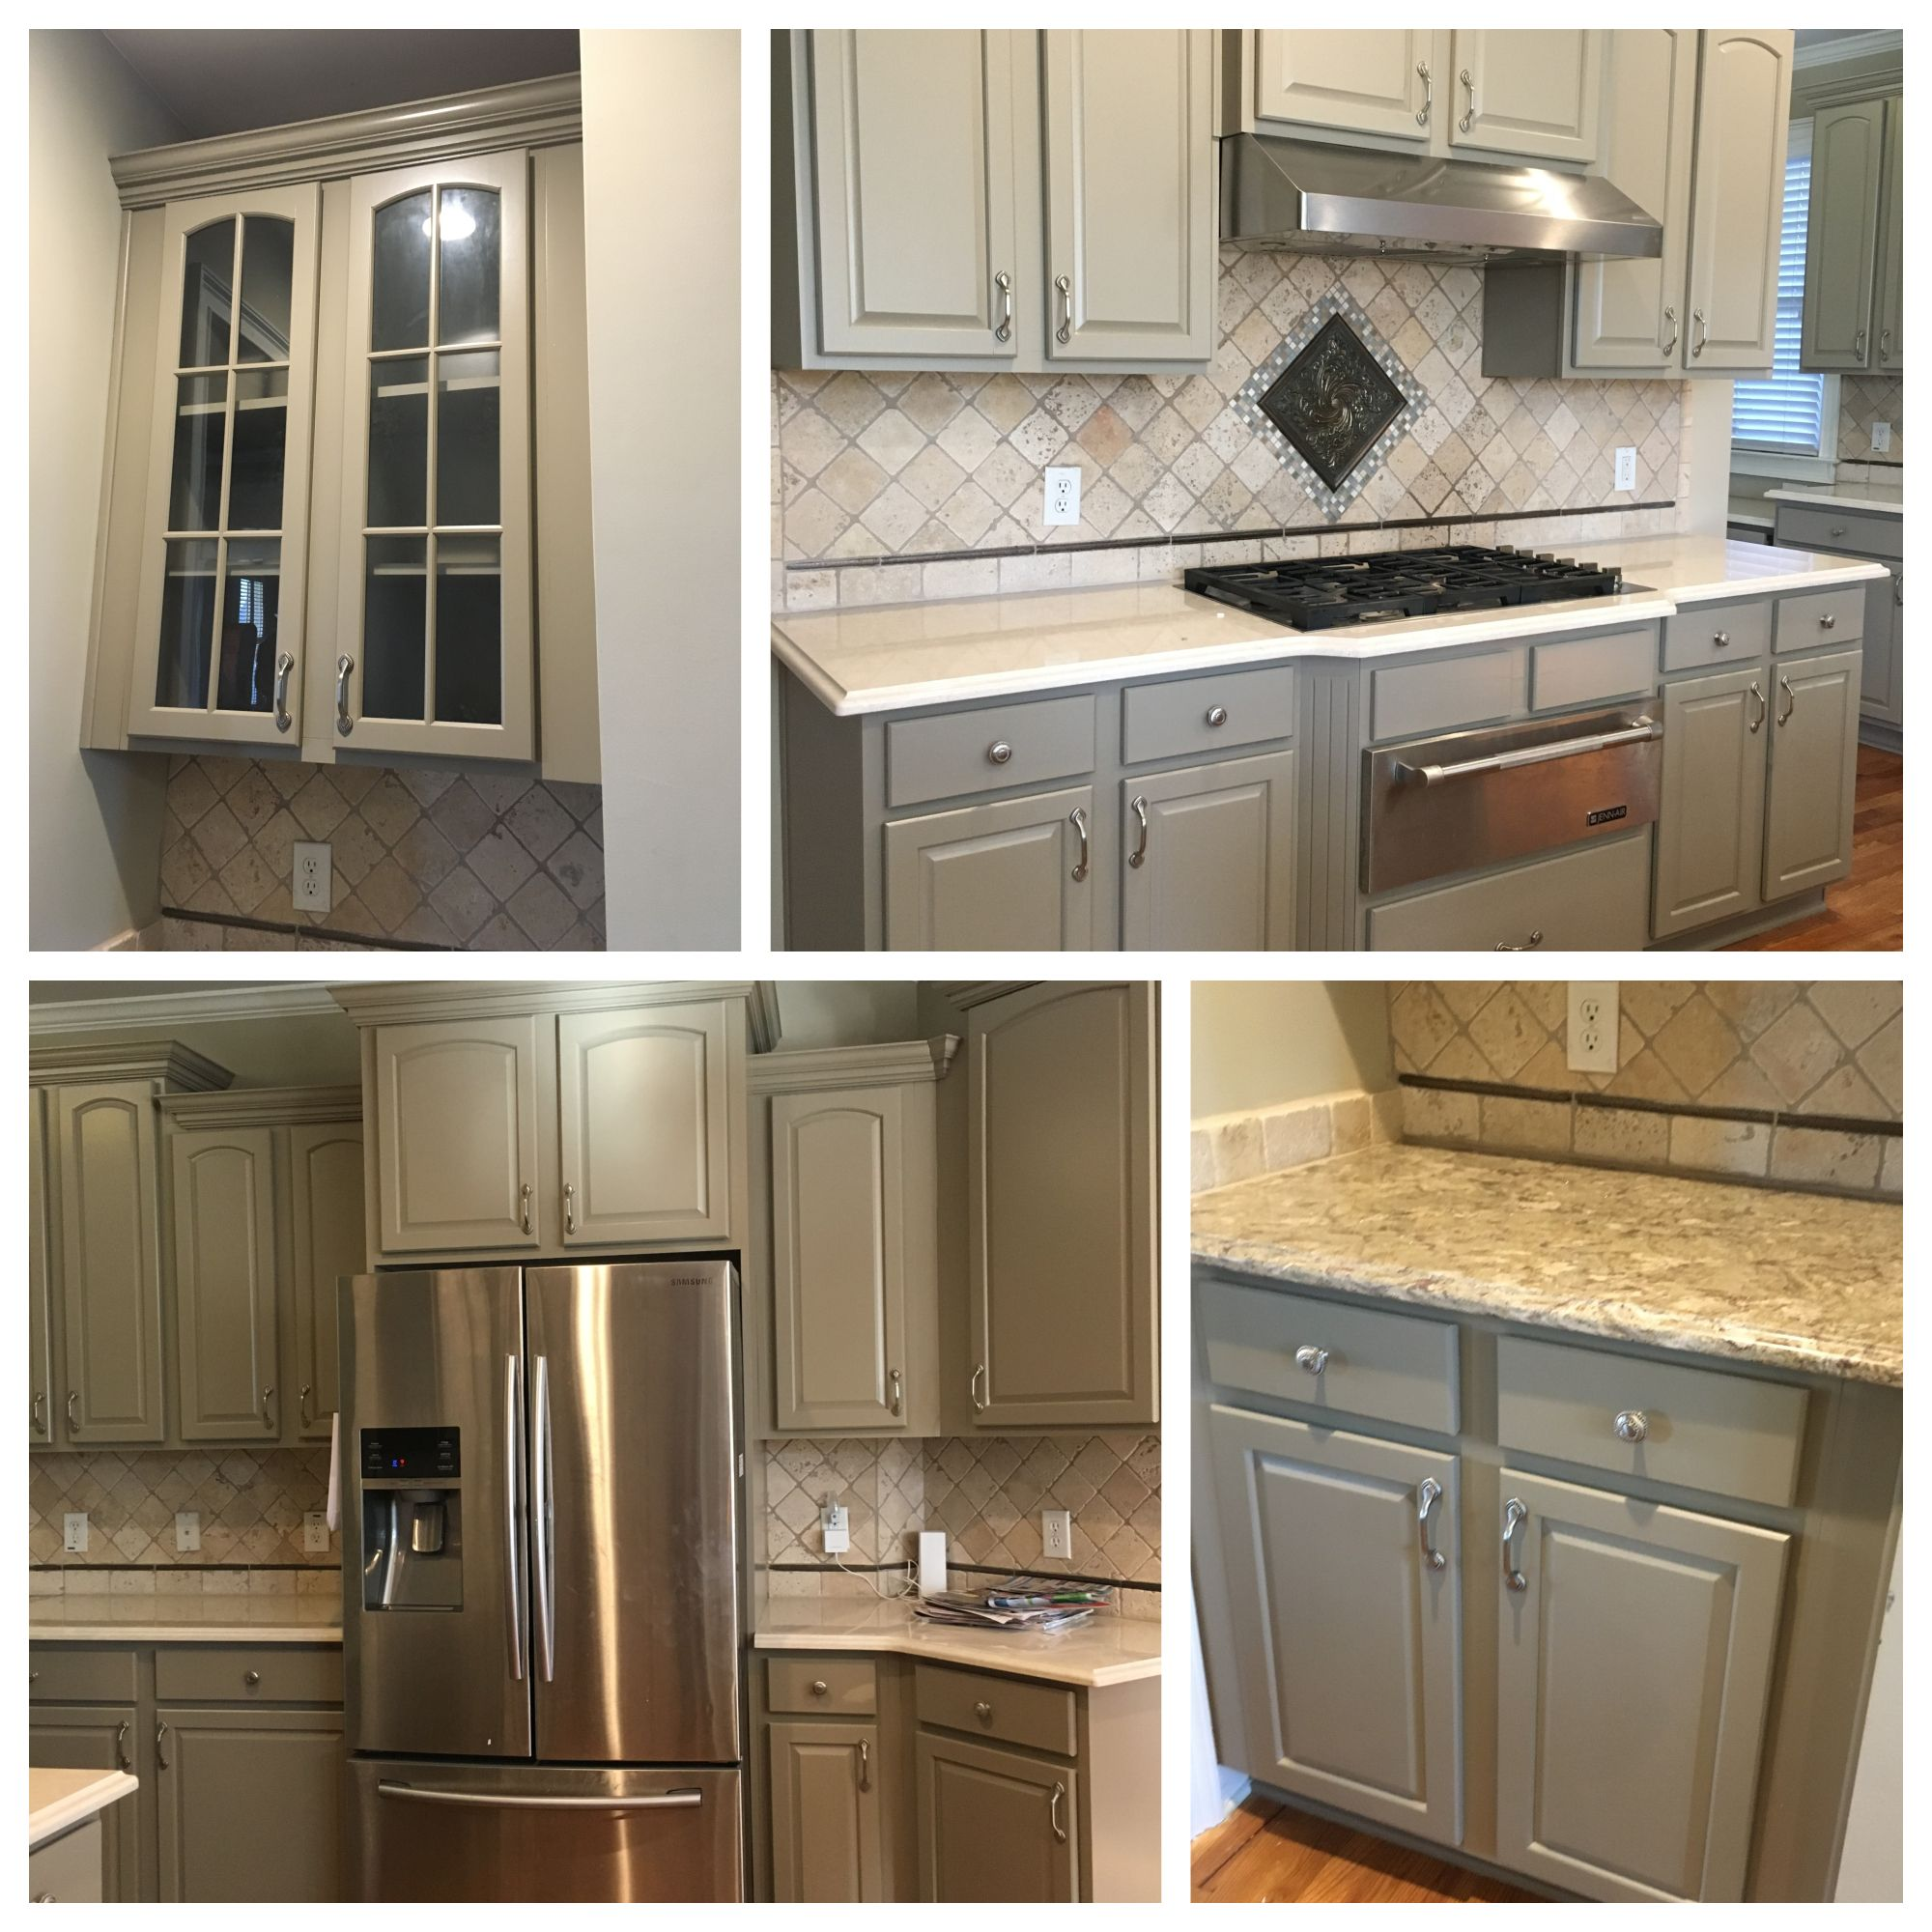 Moths In Kitchen Cabinets: After Cabinets. Sherwin Williams Emerald Urethane SW 9174